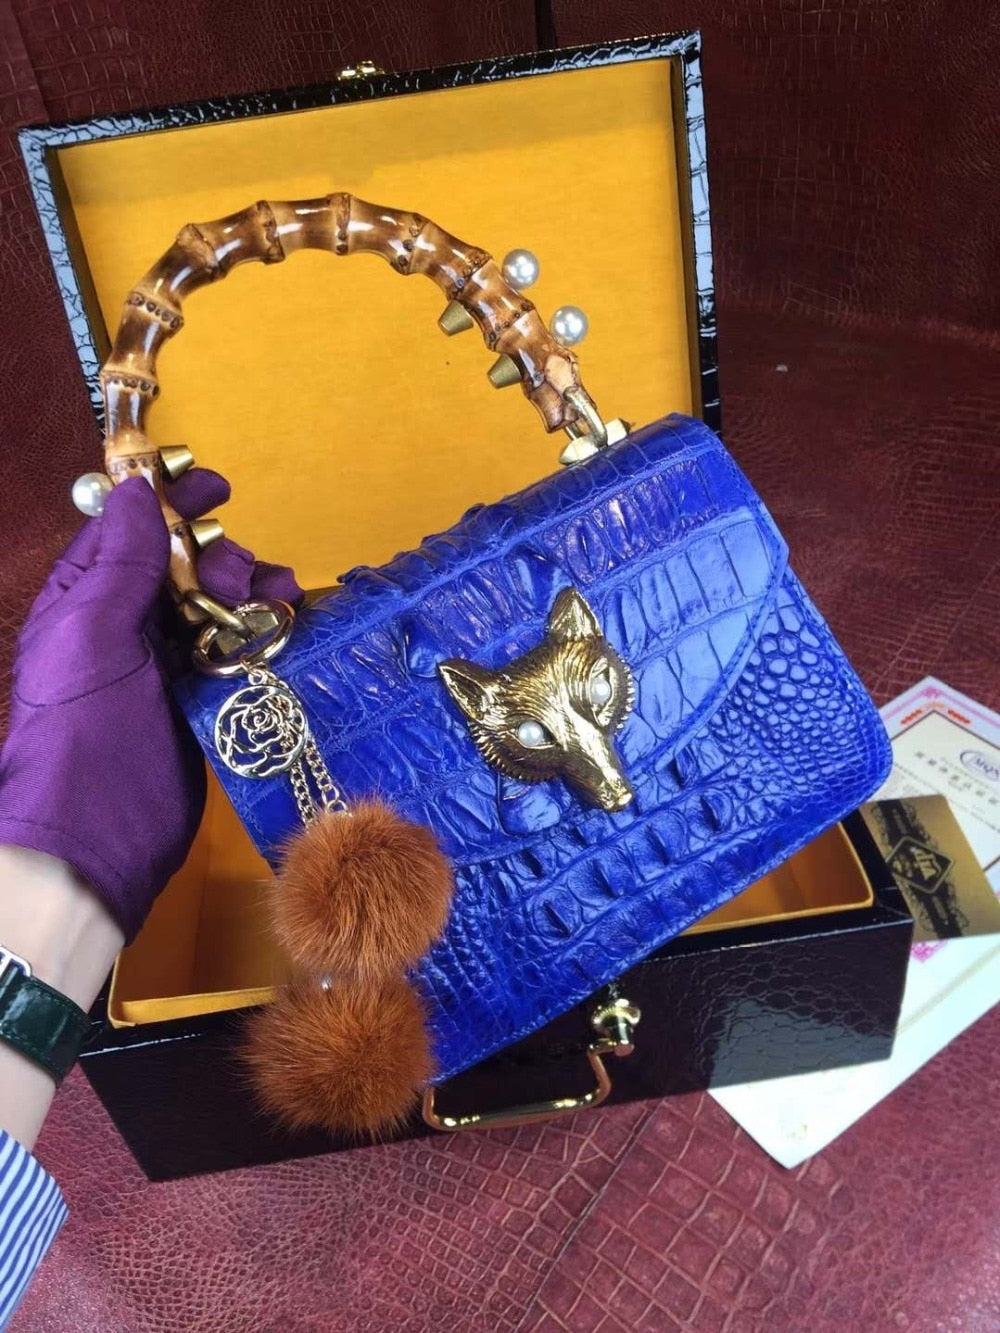 100% Crocodile Skin Small Size long metal chain lady Shoulder /Cross Body Bag alligator skin leather women bag purple blue color